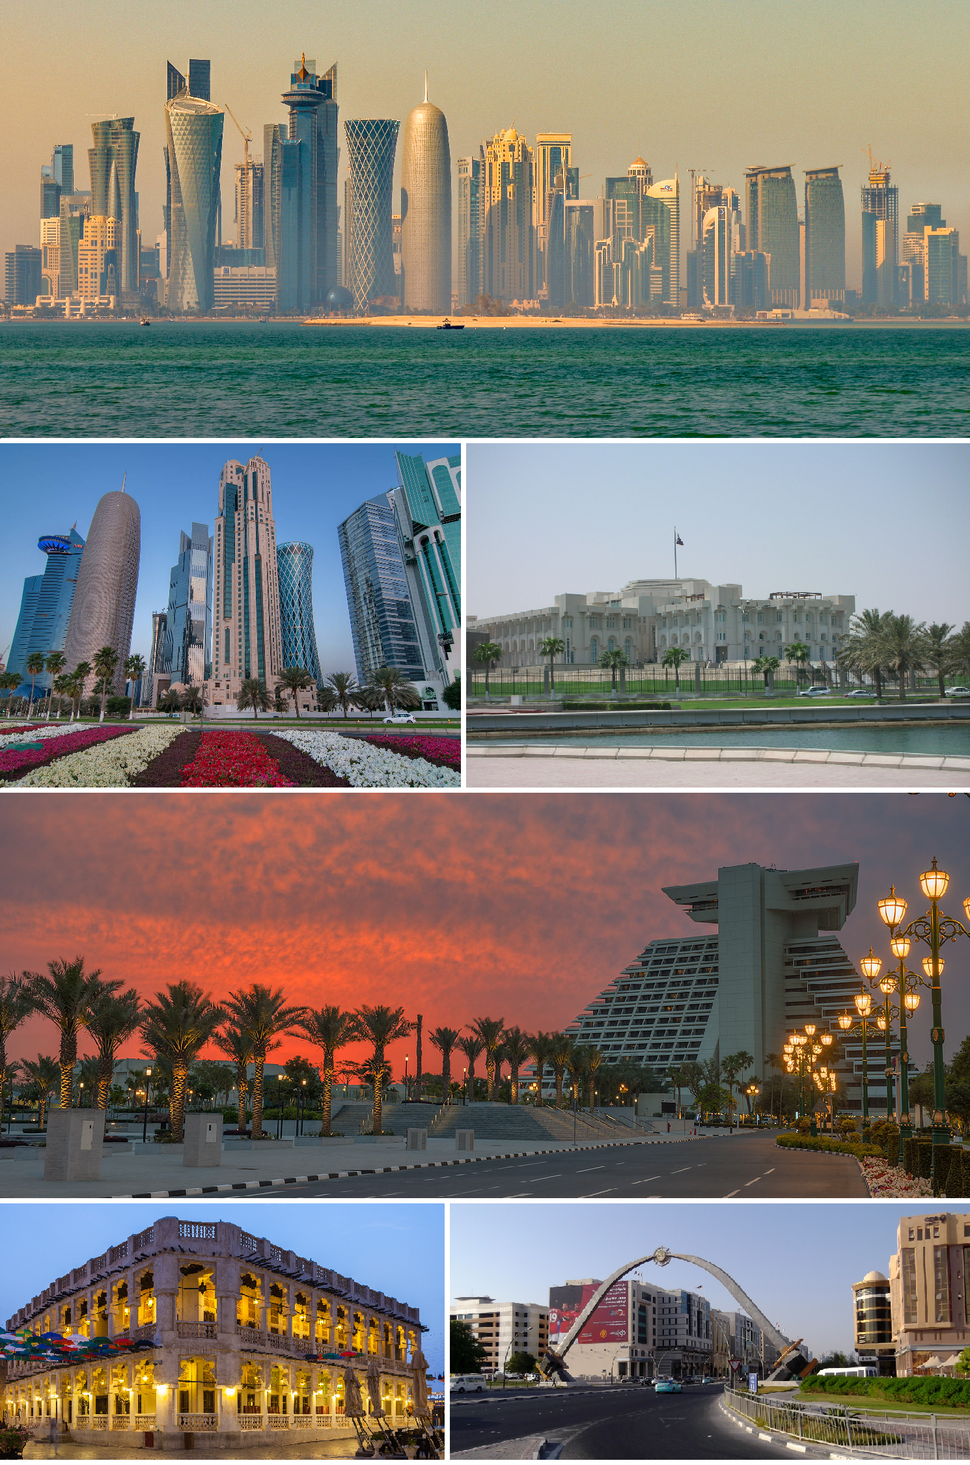 Top to Bottom, Left to Right: Doha skyline in the morning, Modern buildings in West Bay district, Amiri Diwan which serves as the office of the Amir of Qatar, Sheraton hotel, Souq Waqif, Sword Arch on Hamad Street.